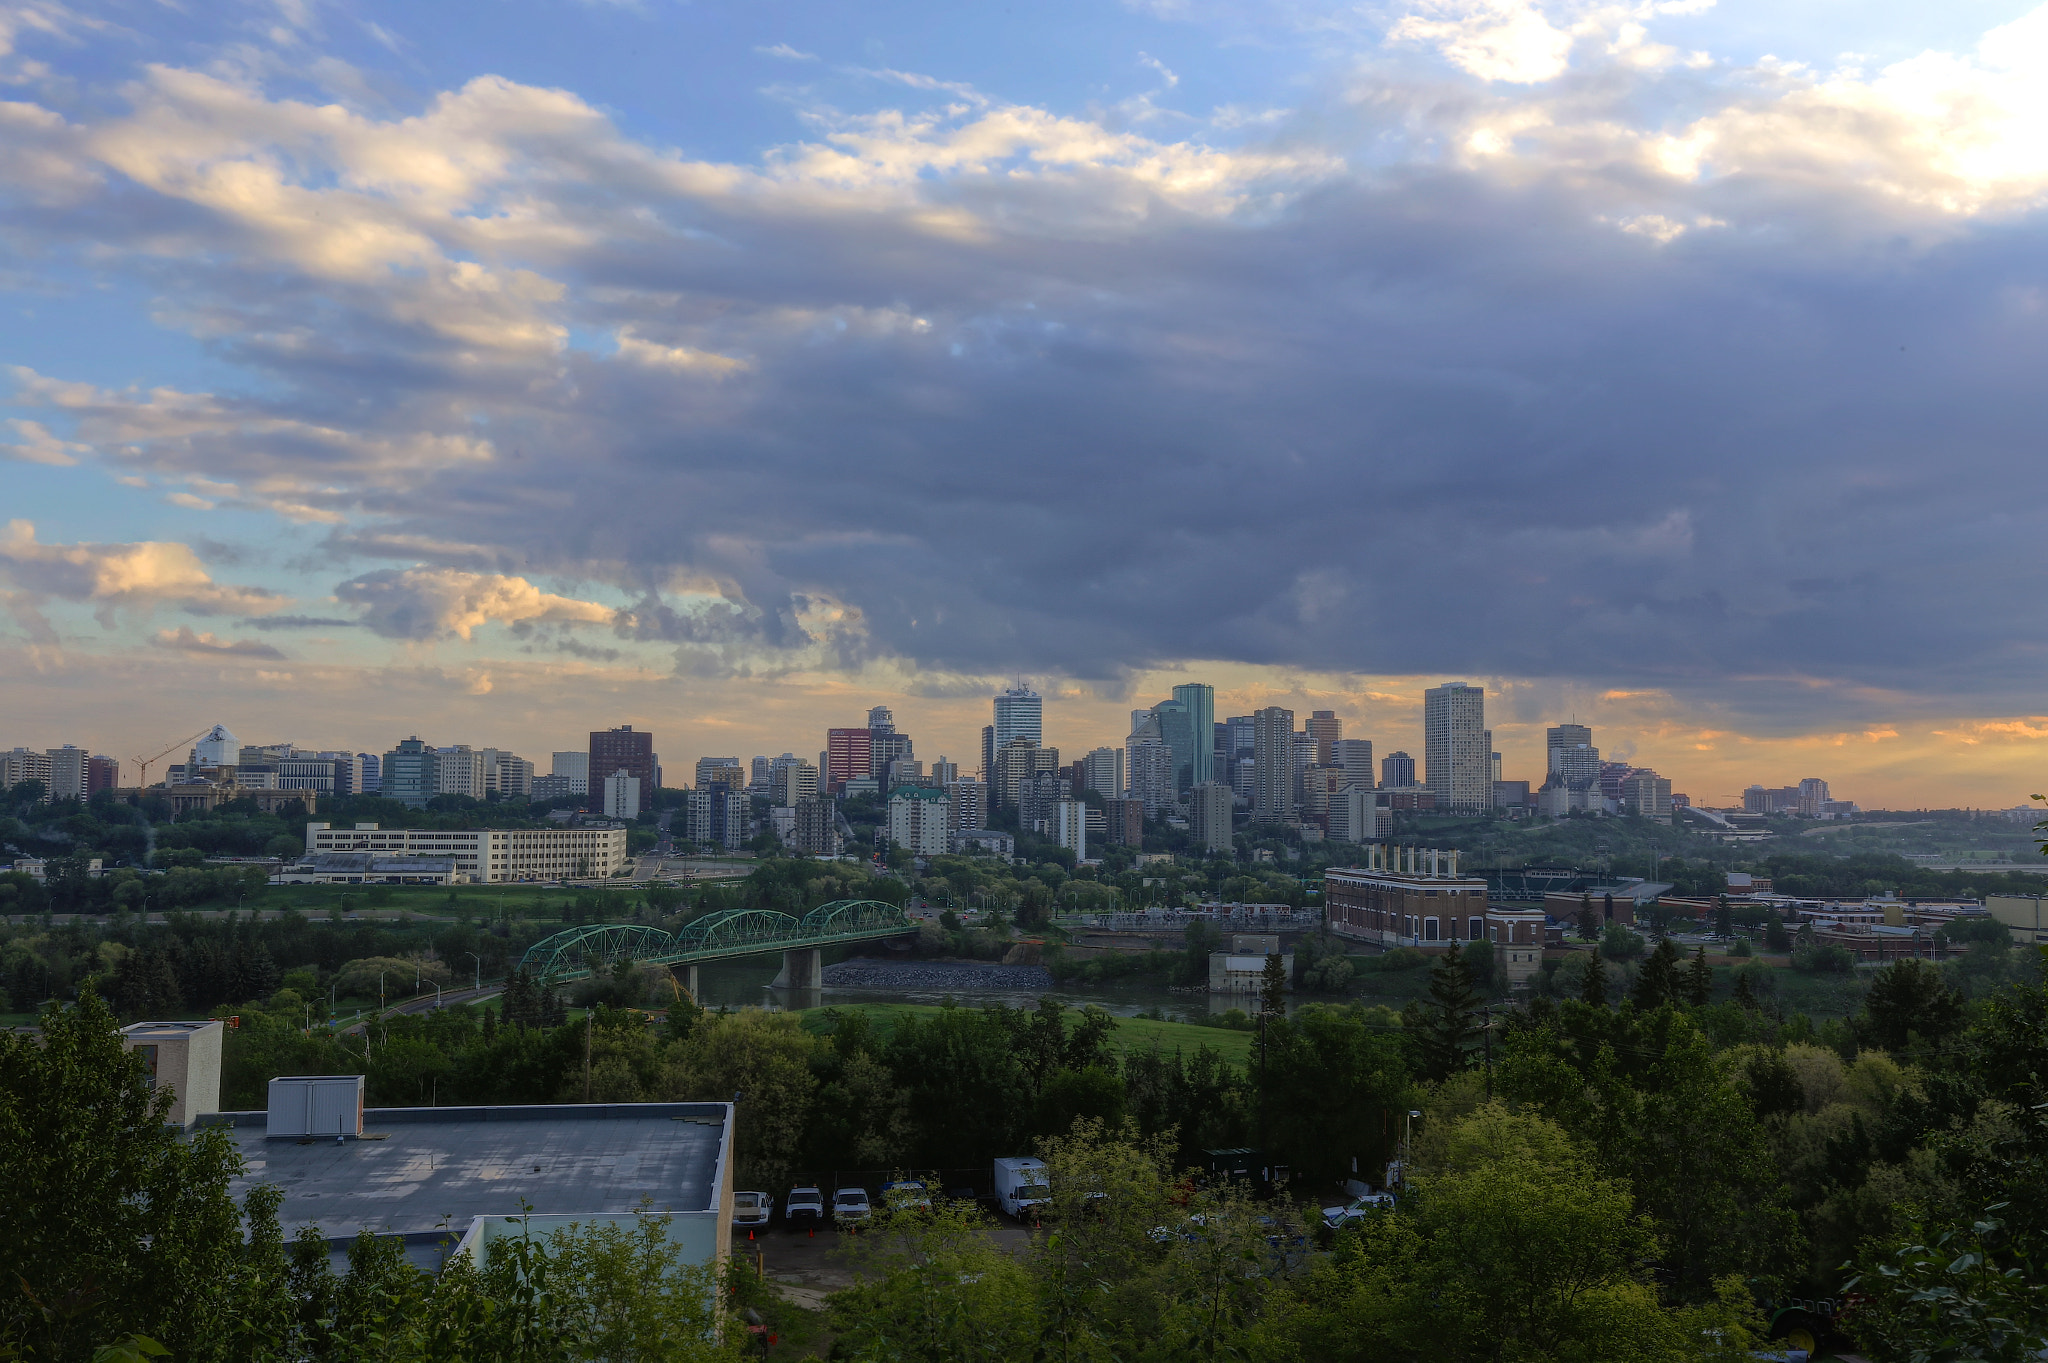 Photograph Edmonton Morning View by Shawn Platt on 500px